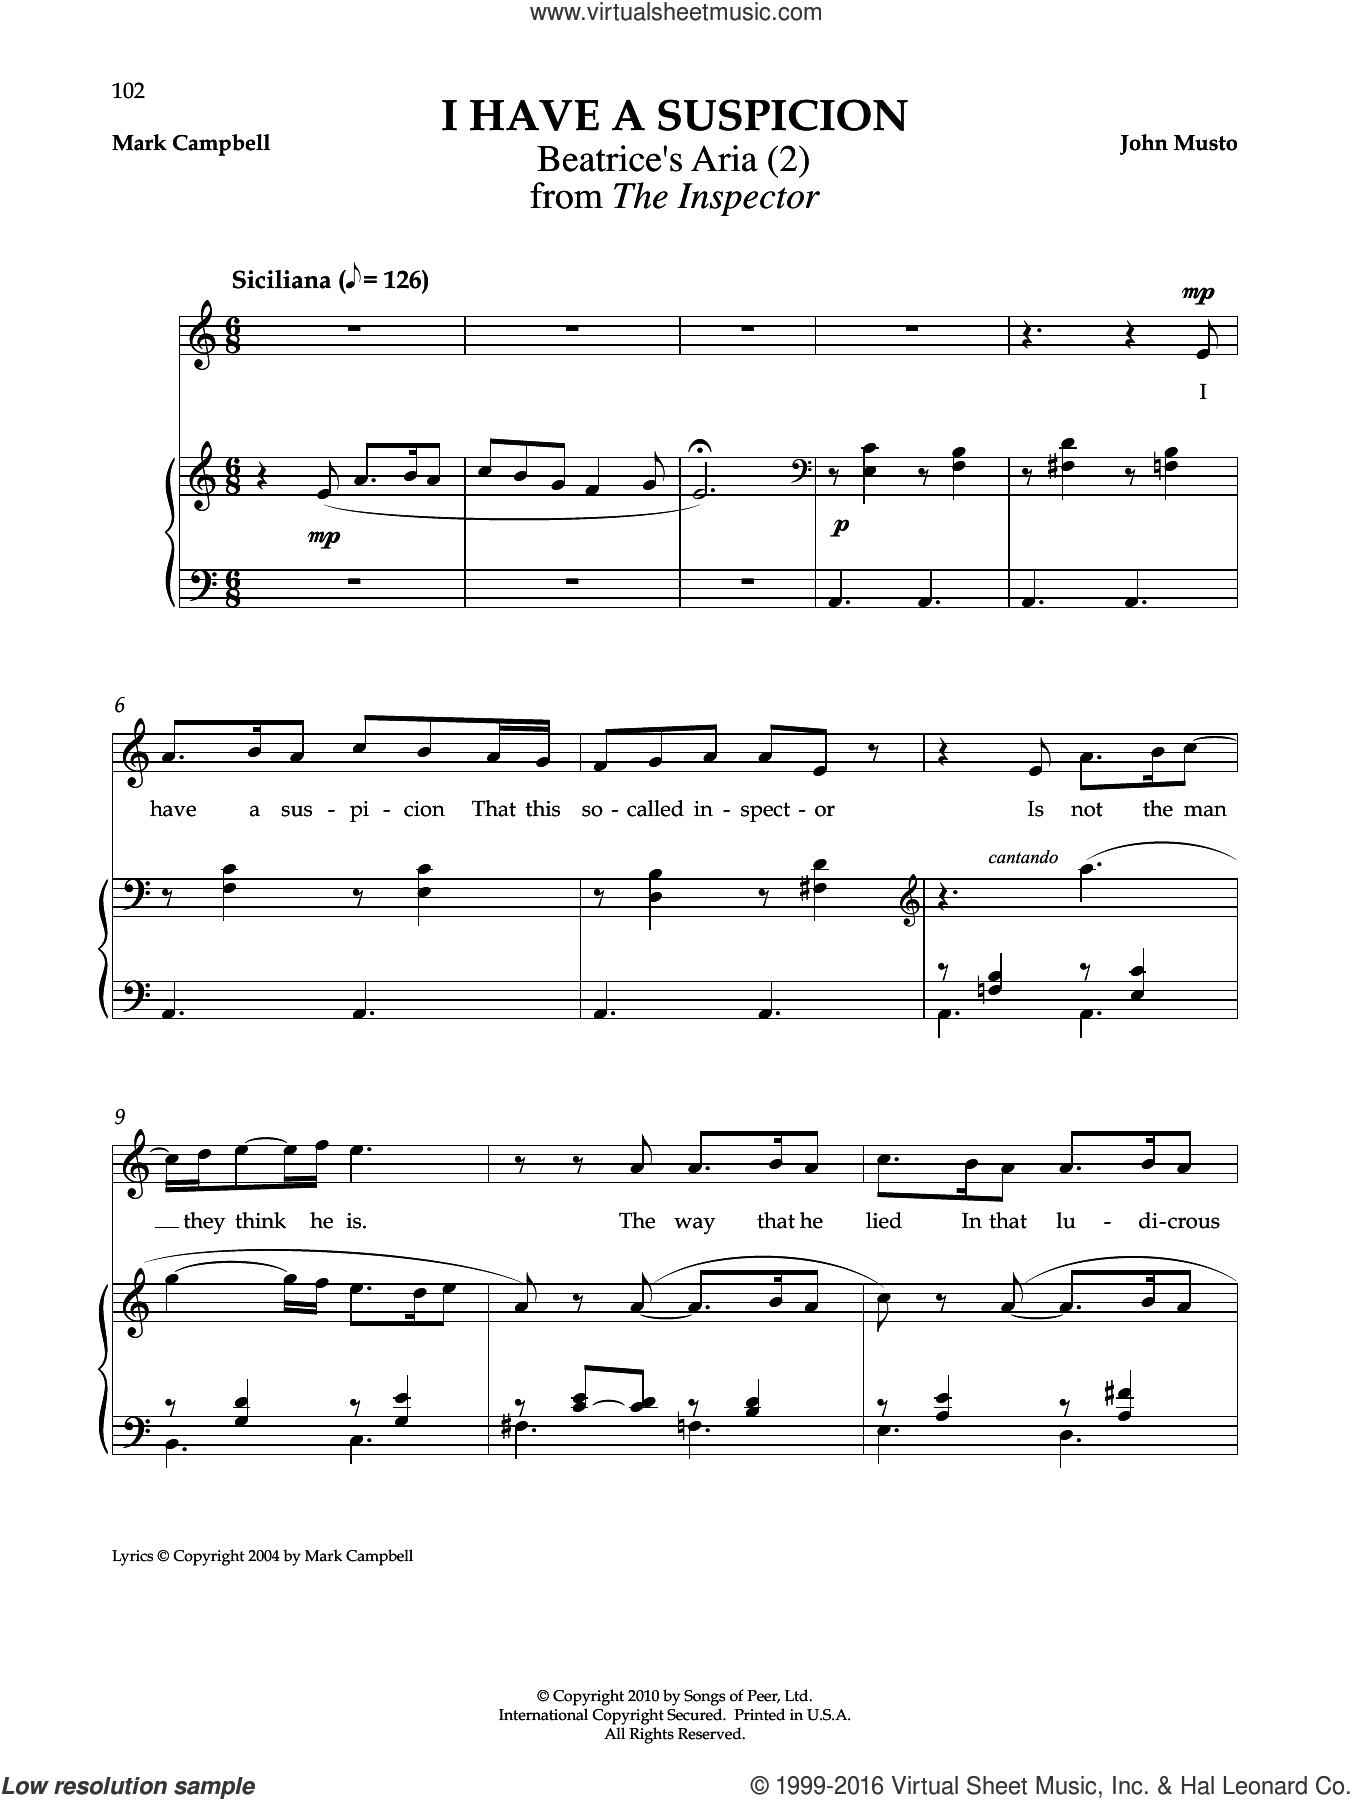 I Have A Suspicion sheet music for voice and piano by Mark Campbell and John Musto. Score Image Preview.